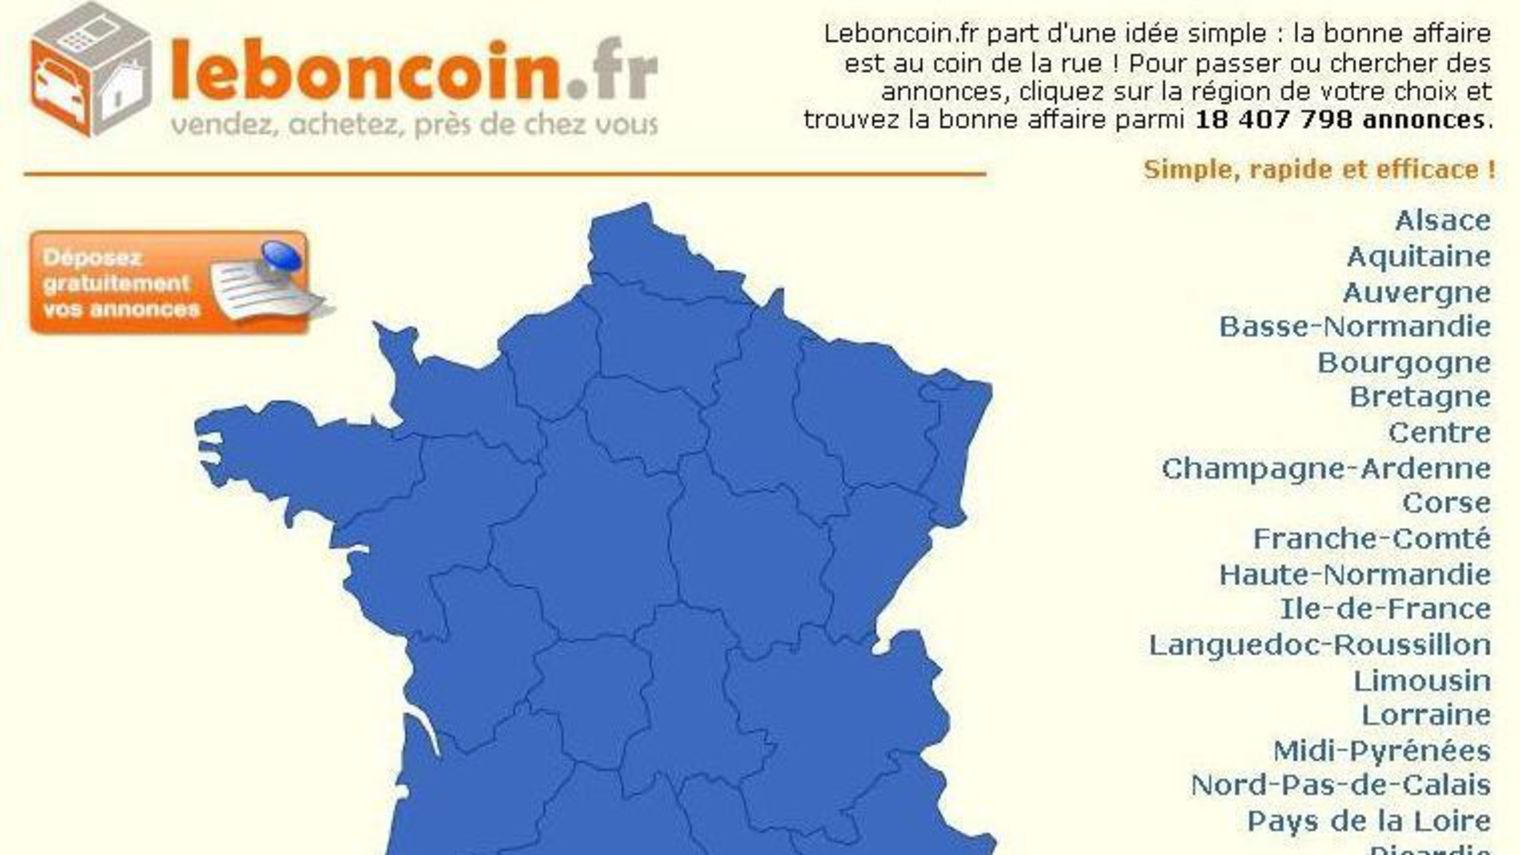 Le bon coin 13 ameublement for Le bon coin 81 ameublement